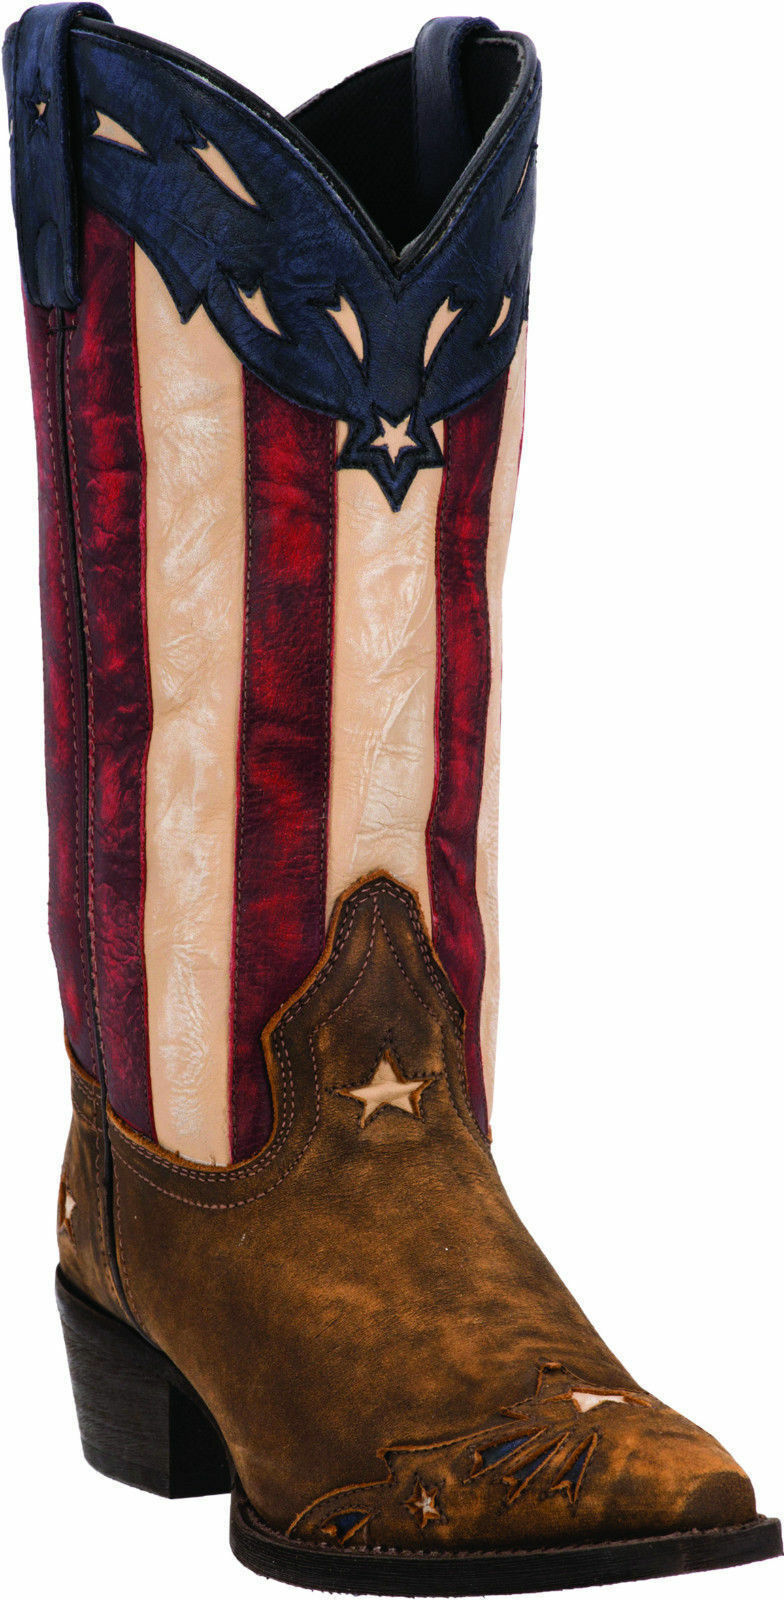 LADIES LAREDO STARS AND STRIPES WESTERN BOOTS 52165